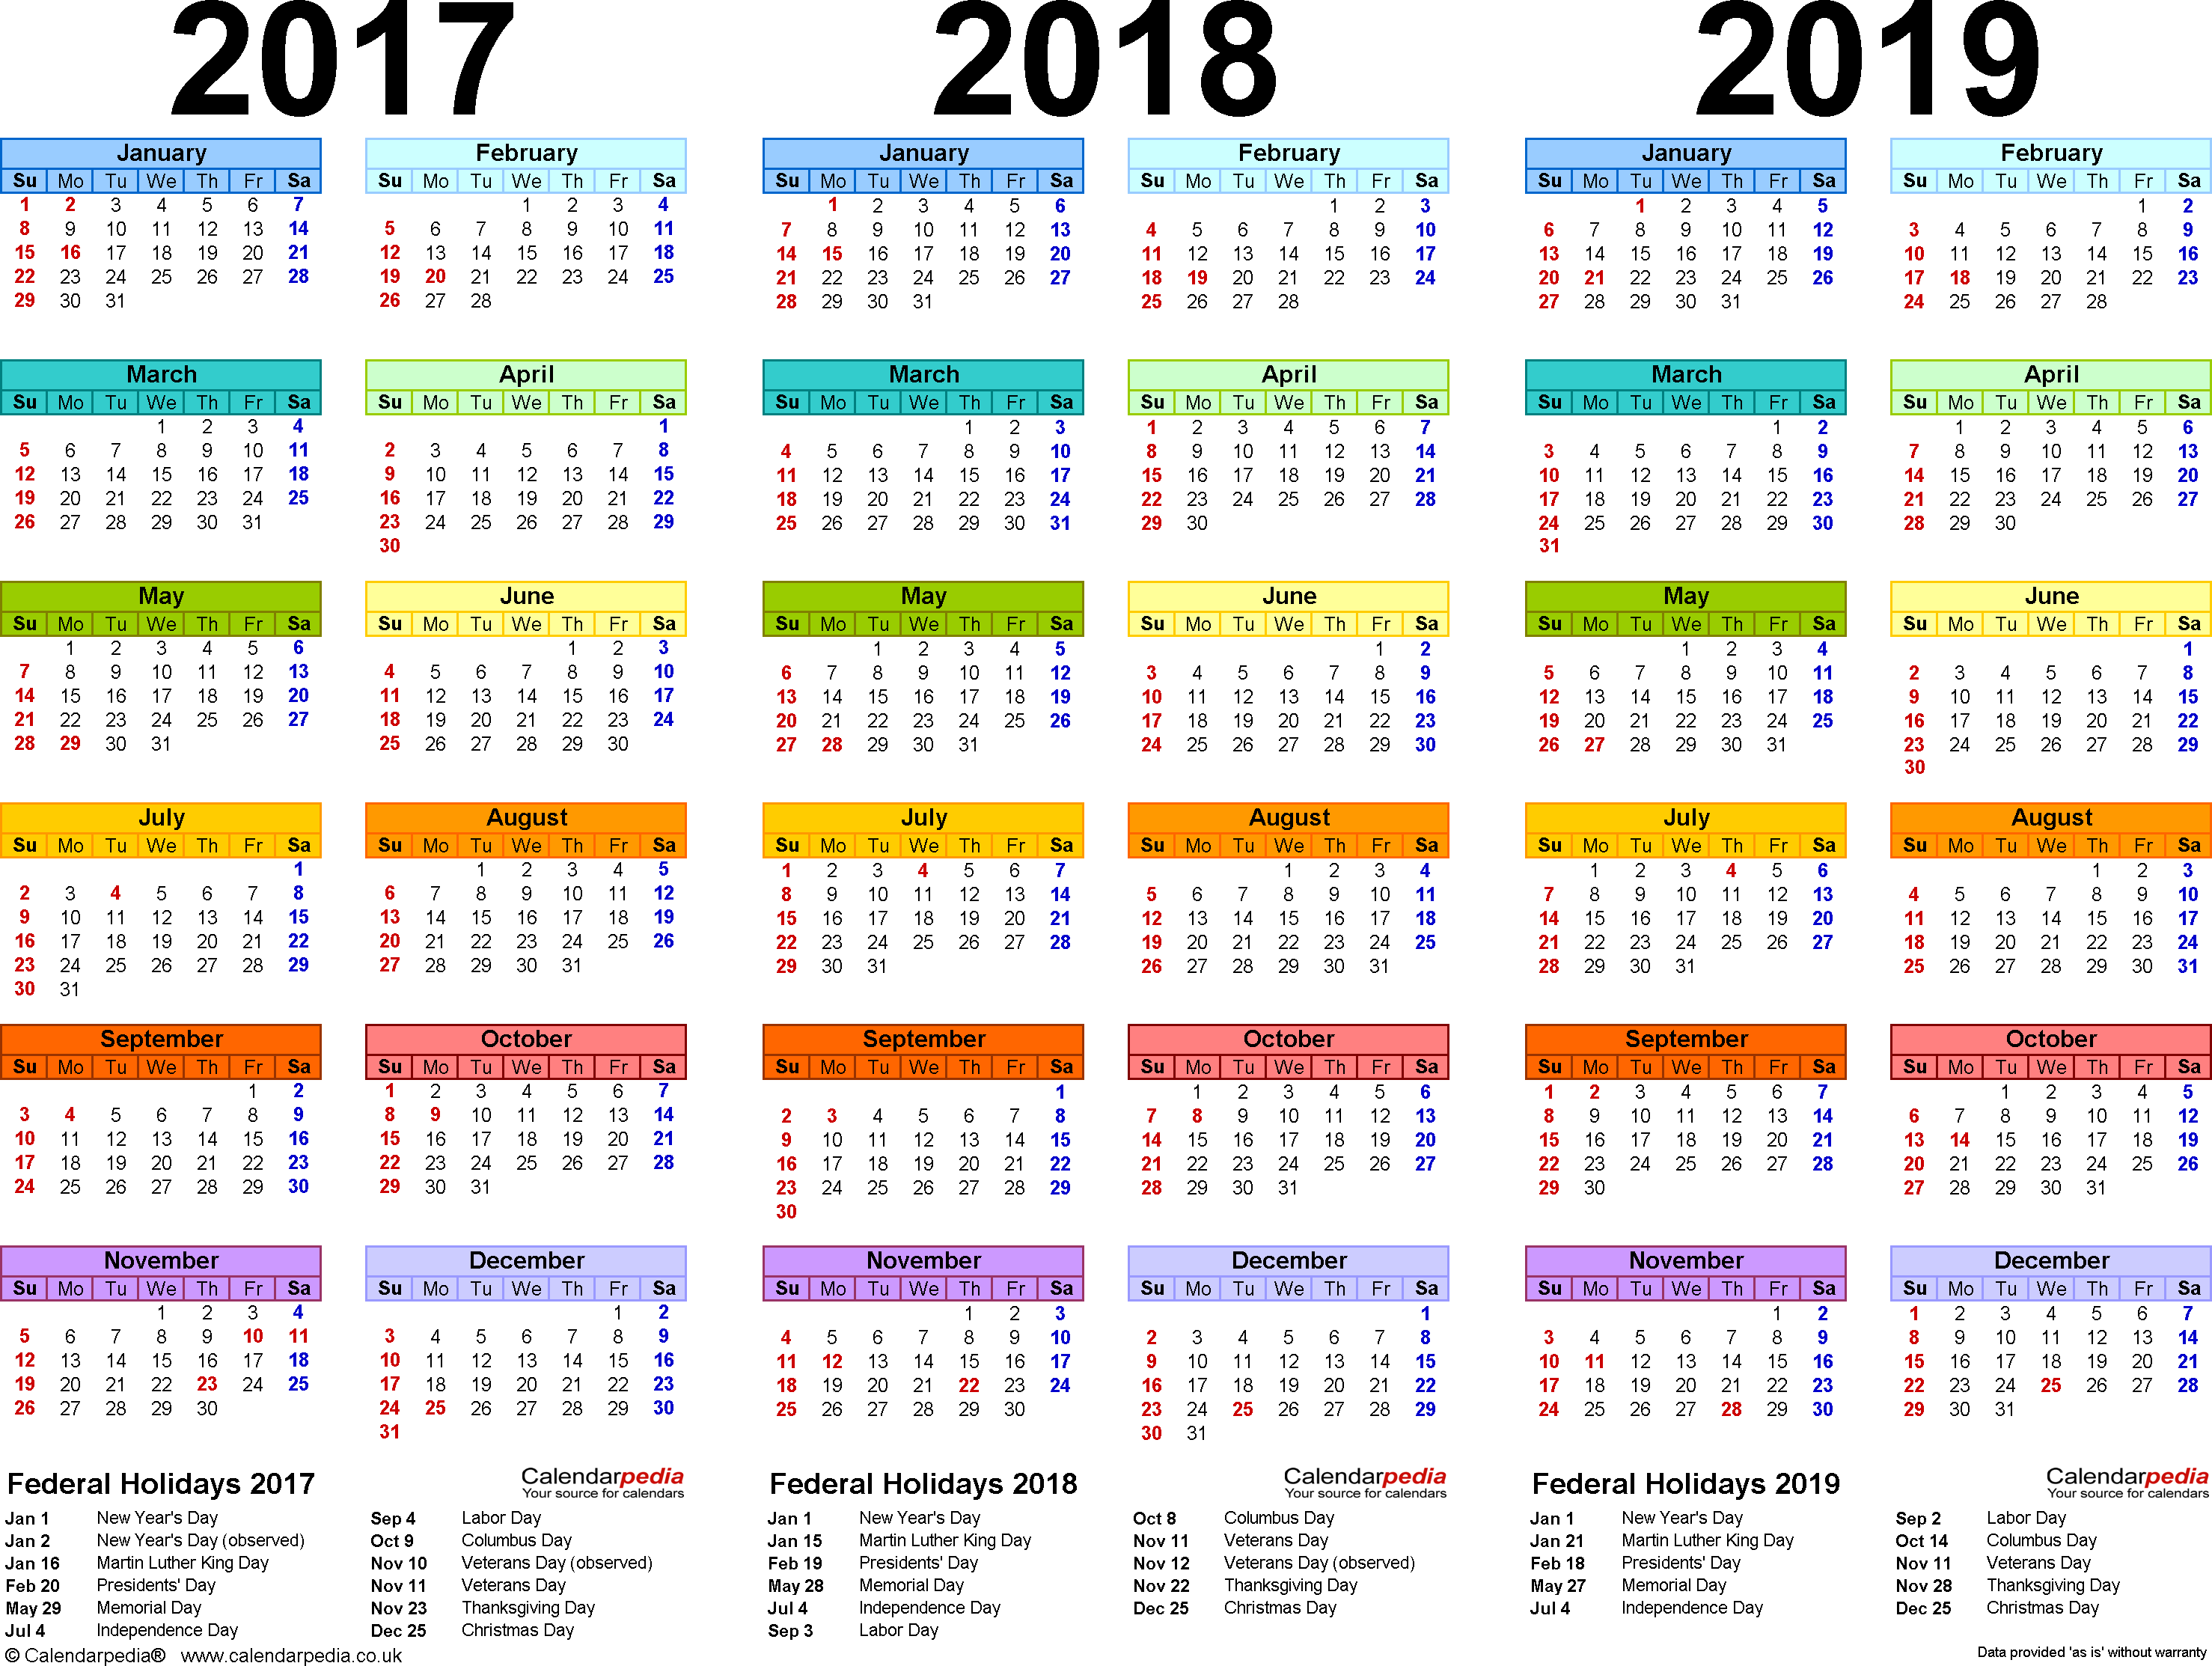 Three Year Calendar Printable Ashleeclubtk - Google docs calendar template 2016